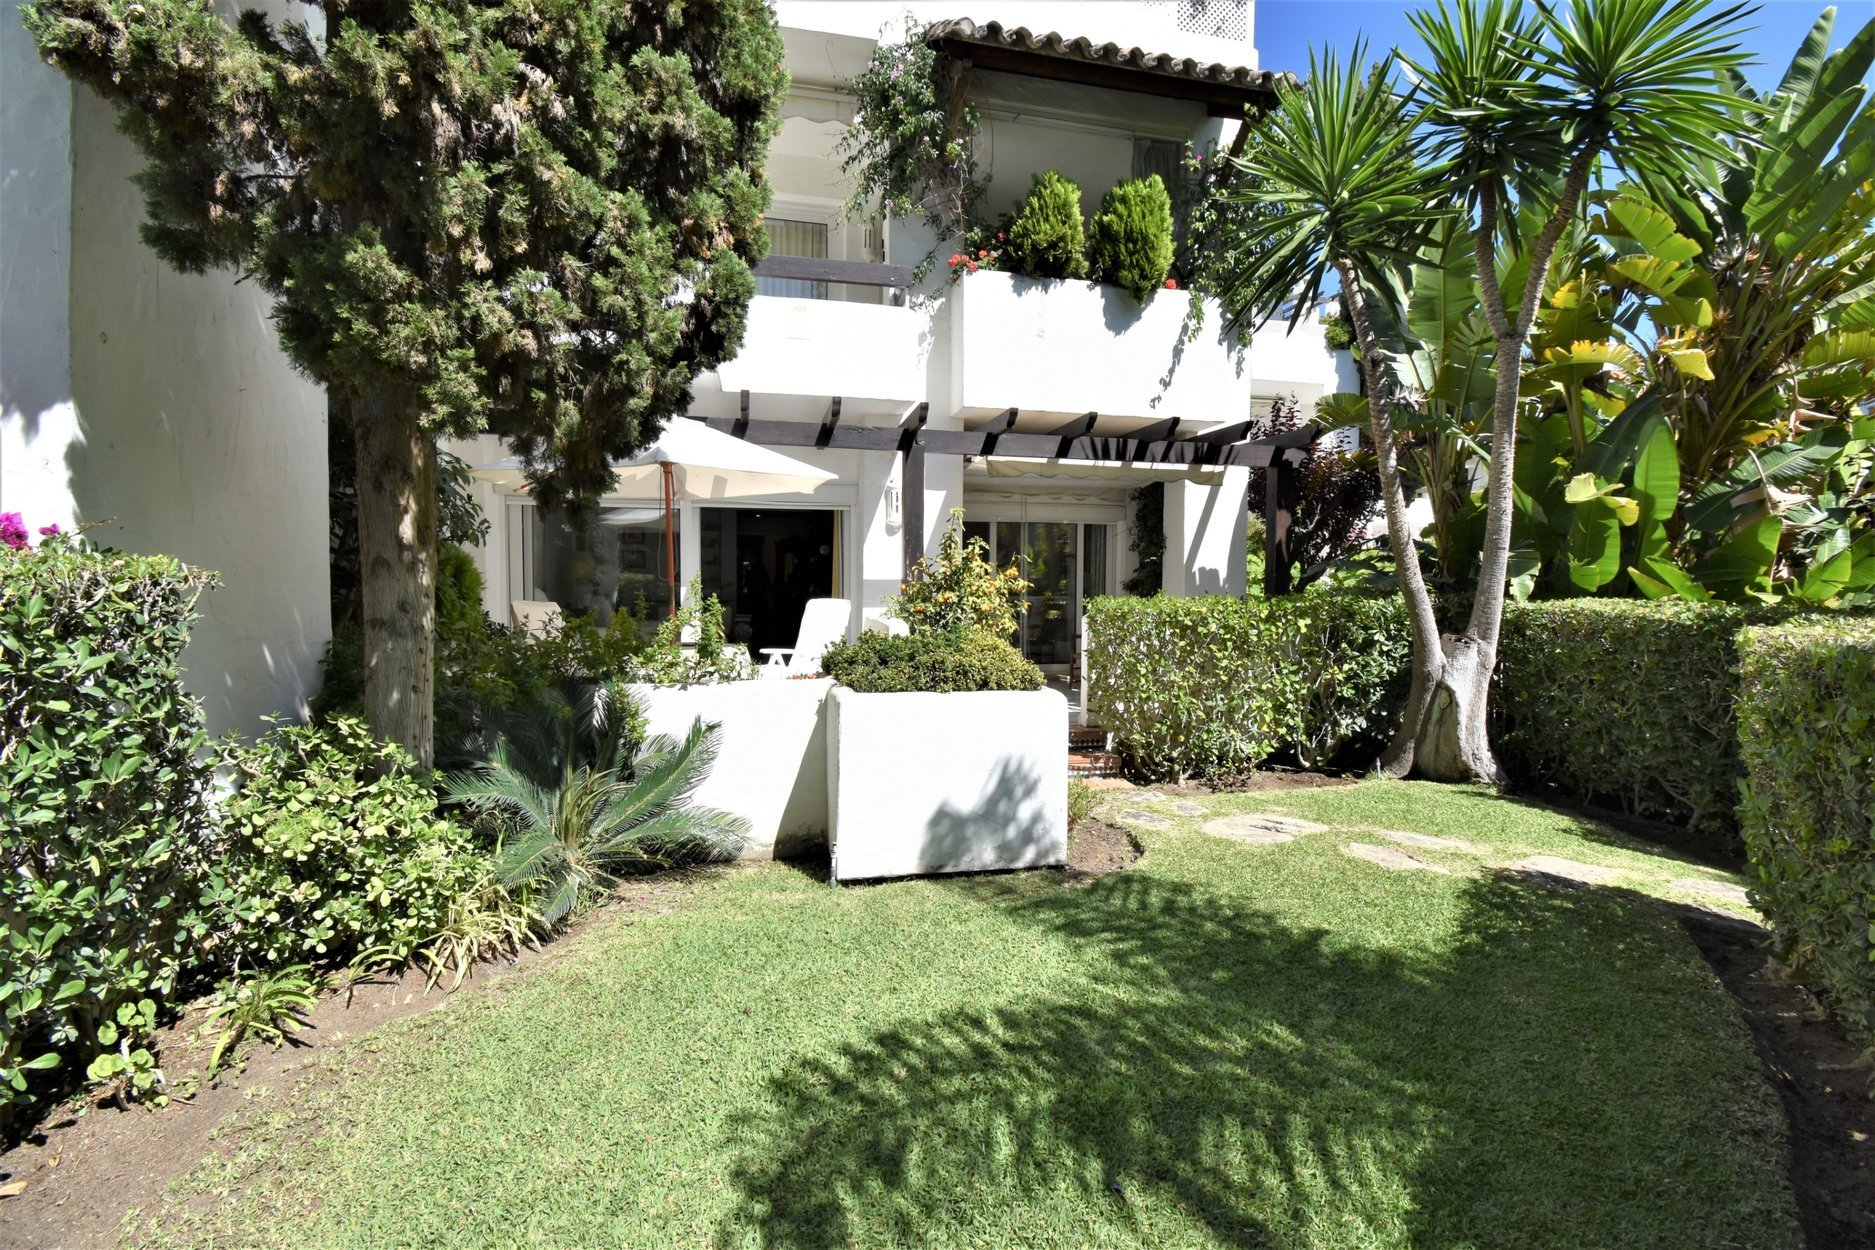 Garden Apartment For Rent In Alhambra Del Mar A 23163 Rd